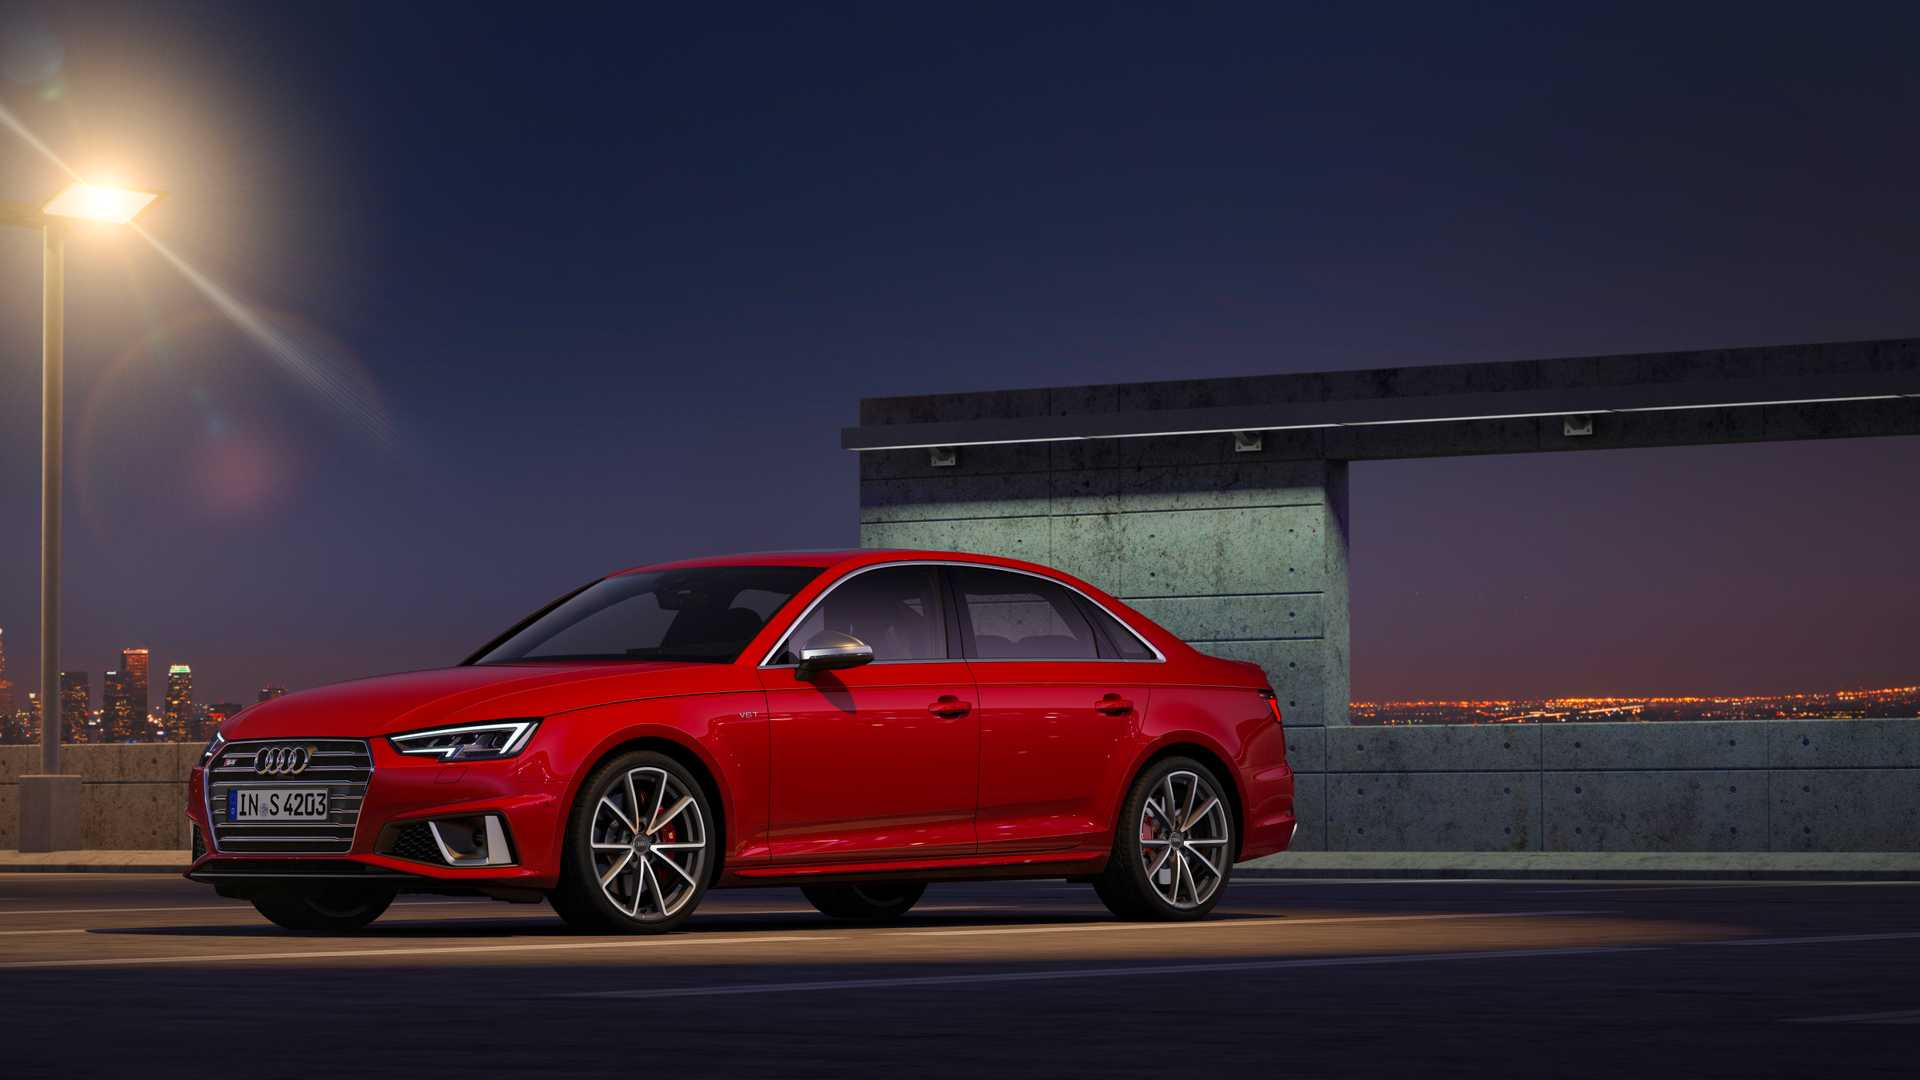 2019 Audi S4 Sedan TDI (Color: Misano Red) Front Three-Quarter Wallpapers (11)